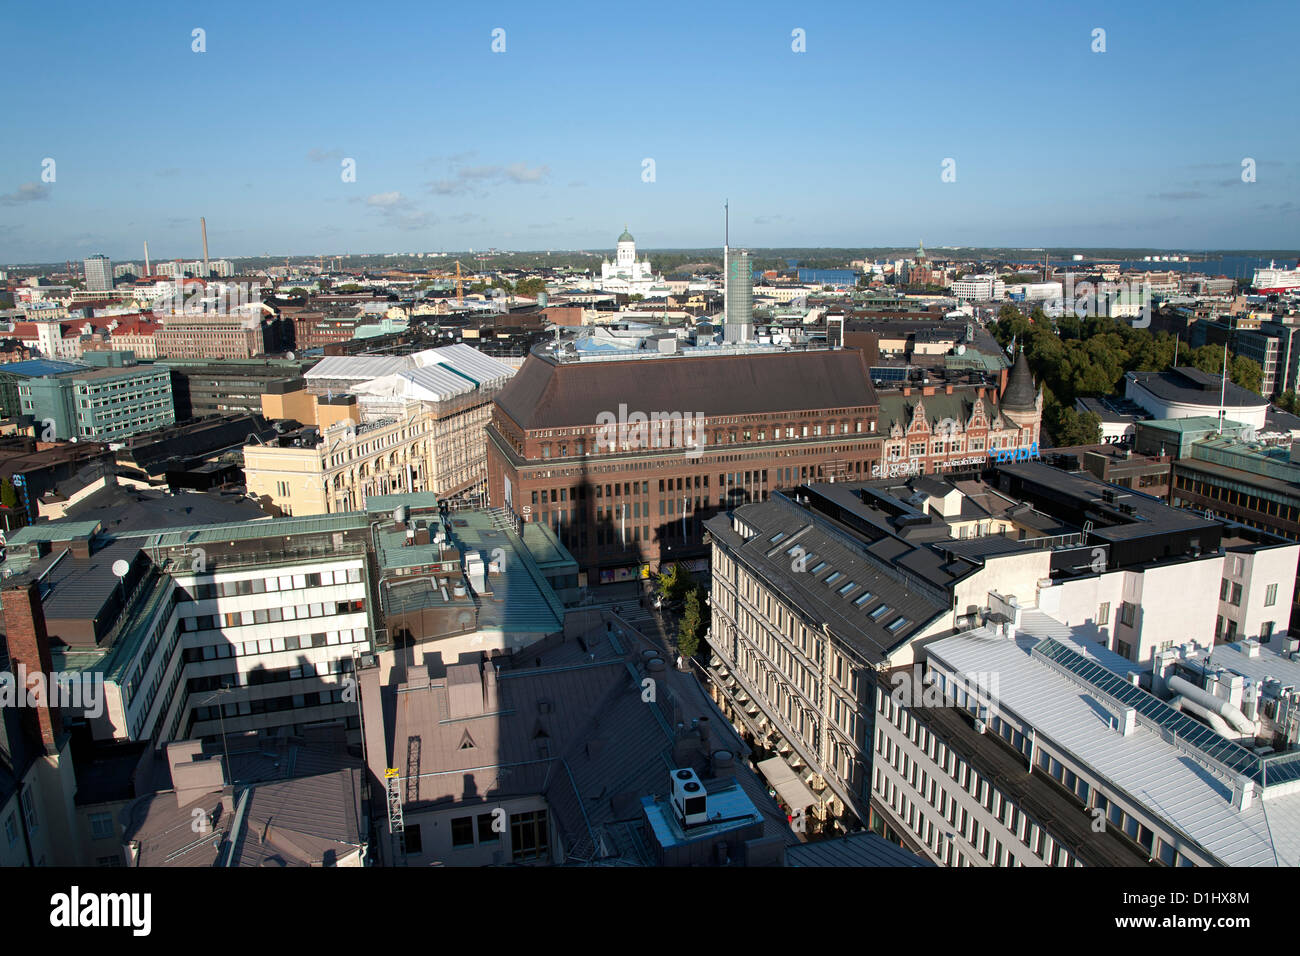 View looking east over the rooftops of Helsinki, the capital of Finland. Taken from the top of the Torni Hotel. - Stock Image